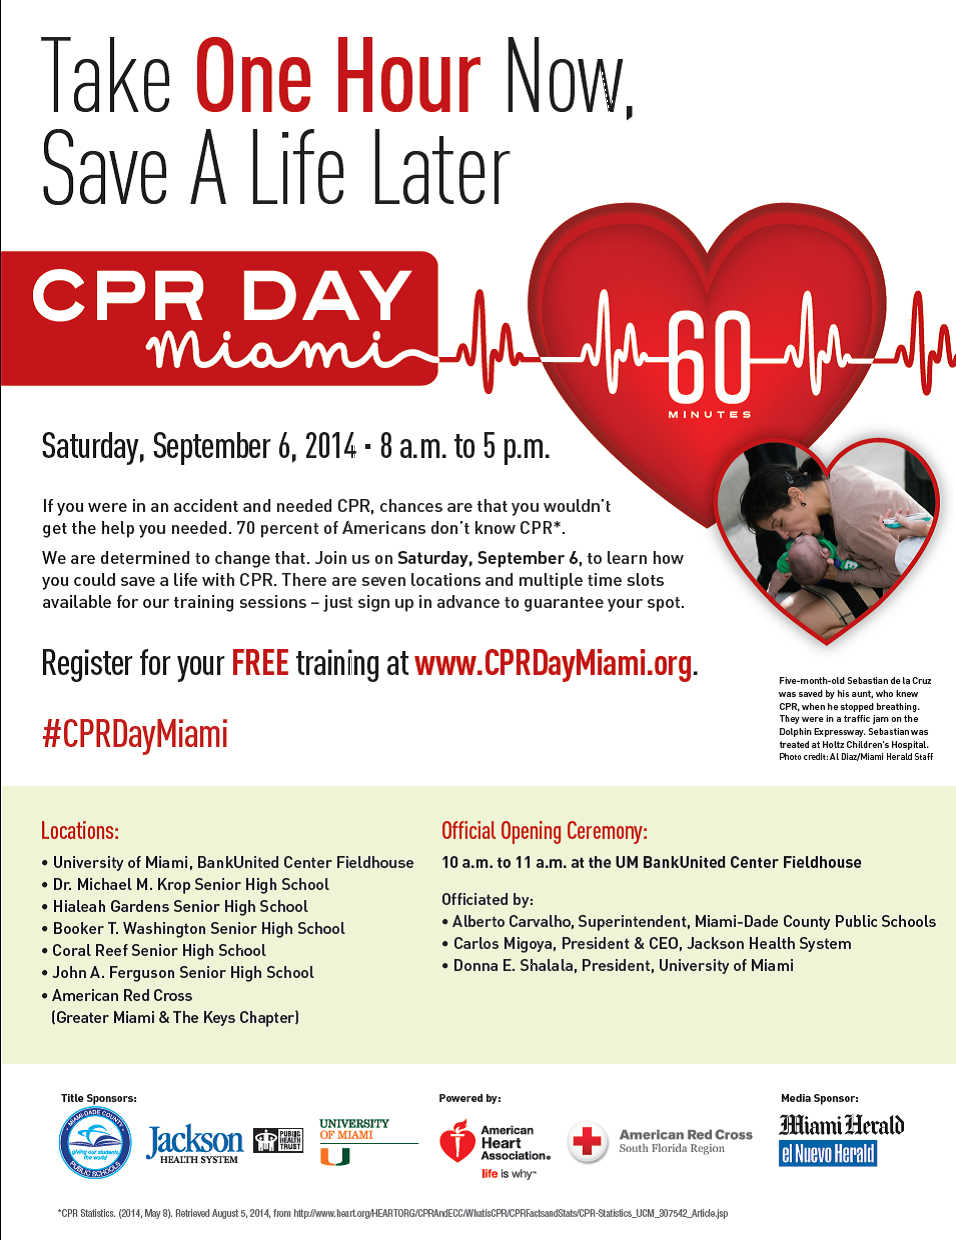 CPR DAY Miami on September 6th